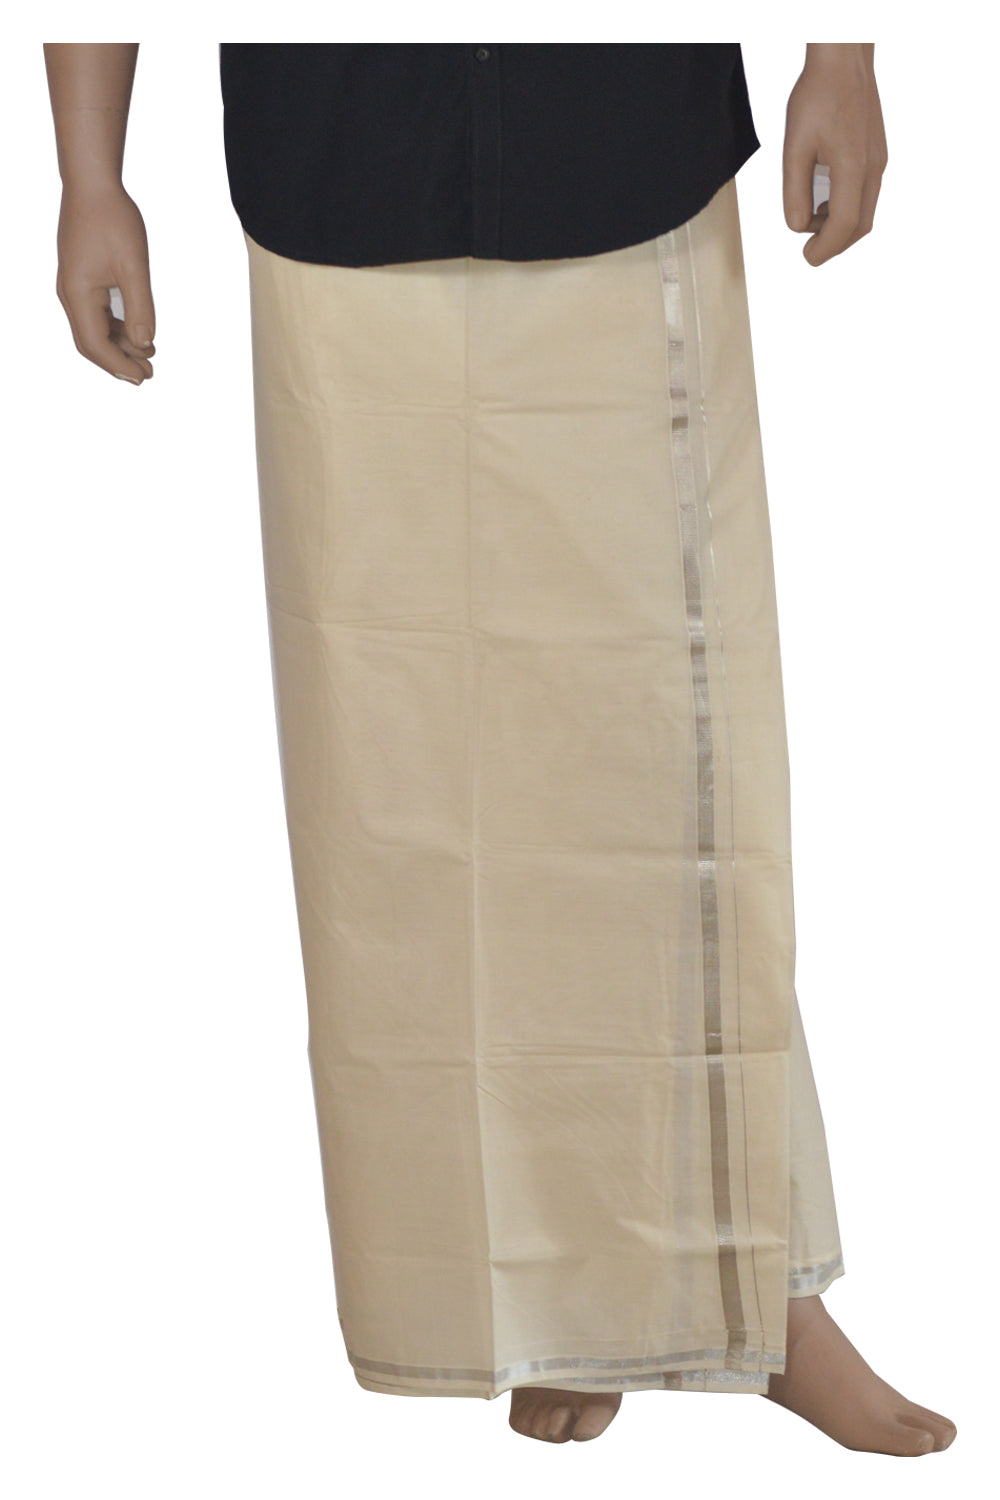 Mundu with Silver Kasavu Kara (South Indian Dhoti) 0.5 Inches